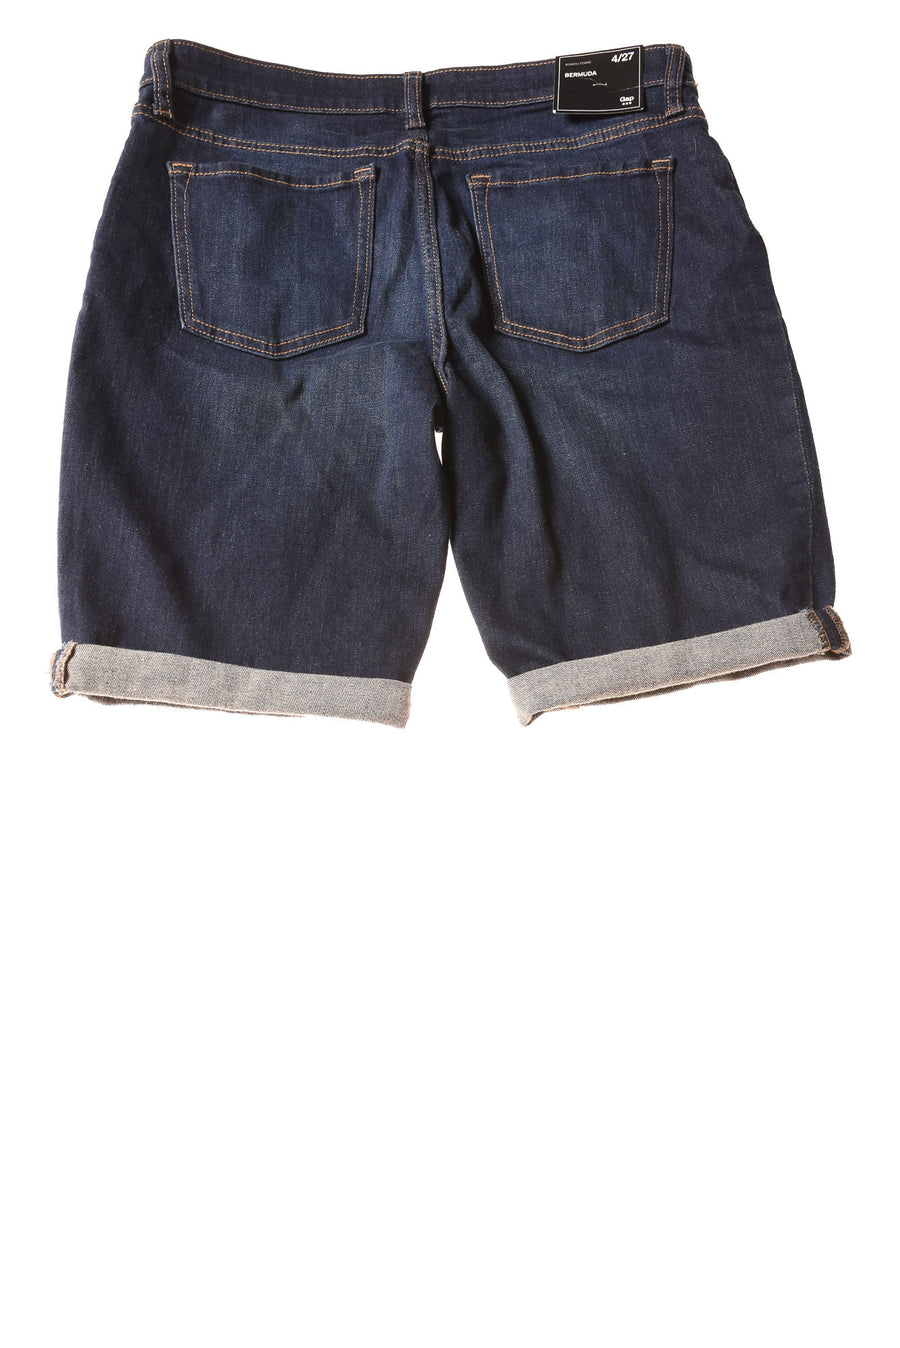 NEW Gap Women's Shorts 4 Blue